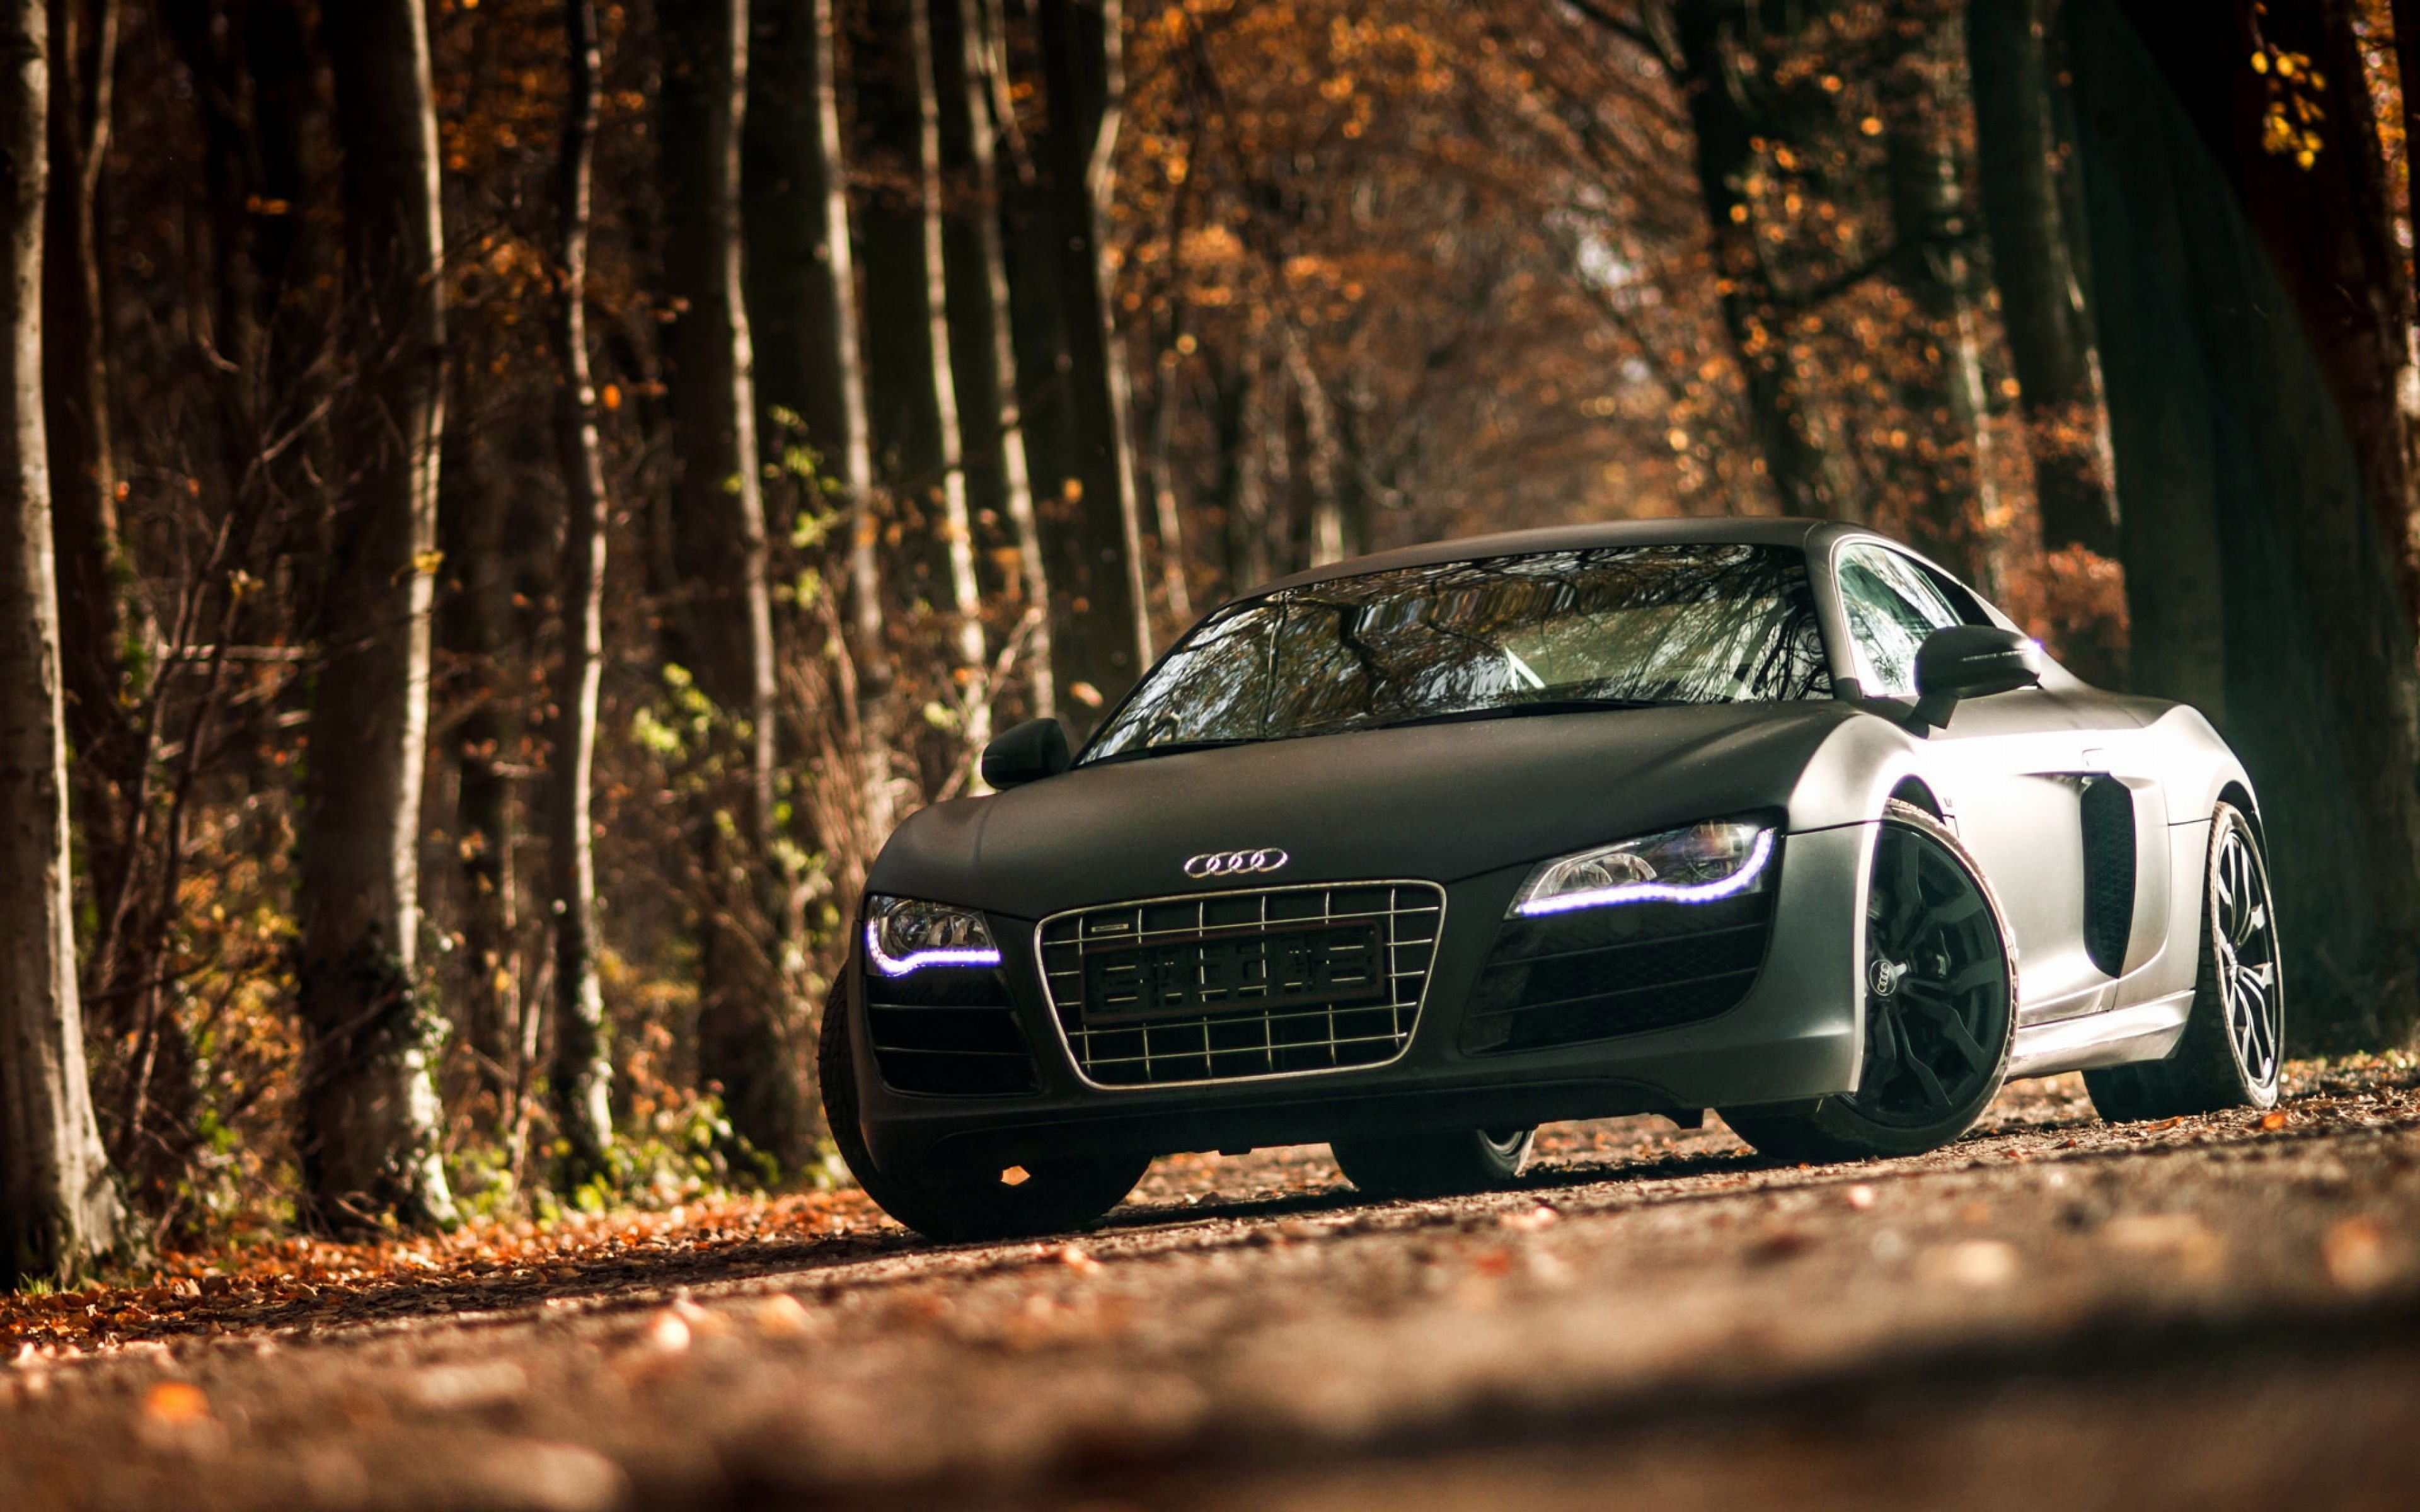 Latest Tag For Audi Car Edits Full Hd Background Cars Image 4K Free Download